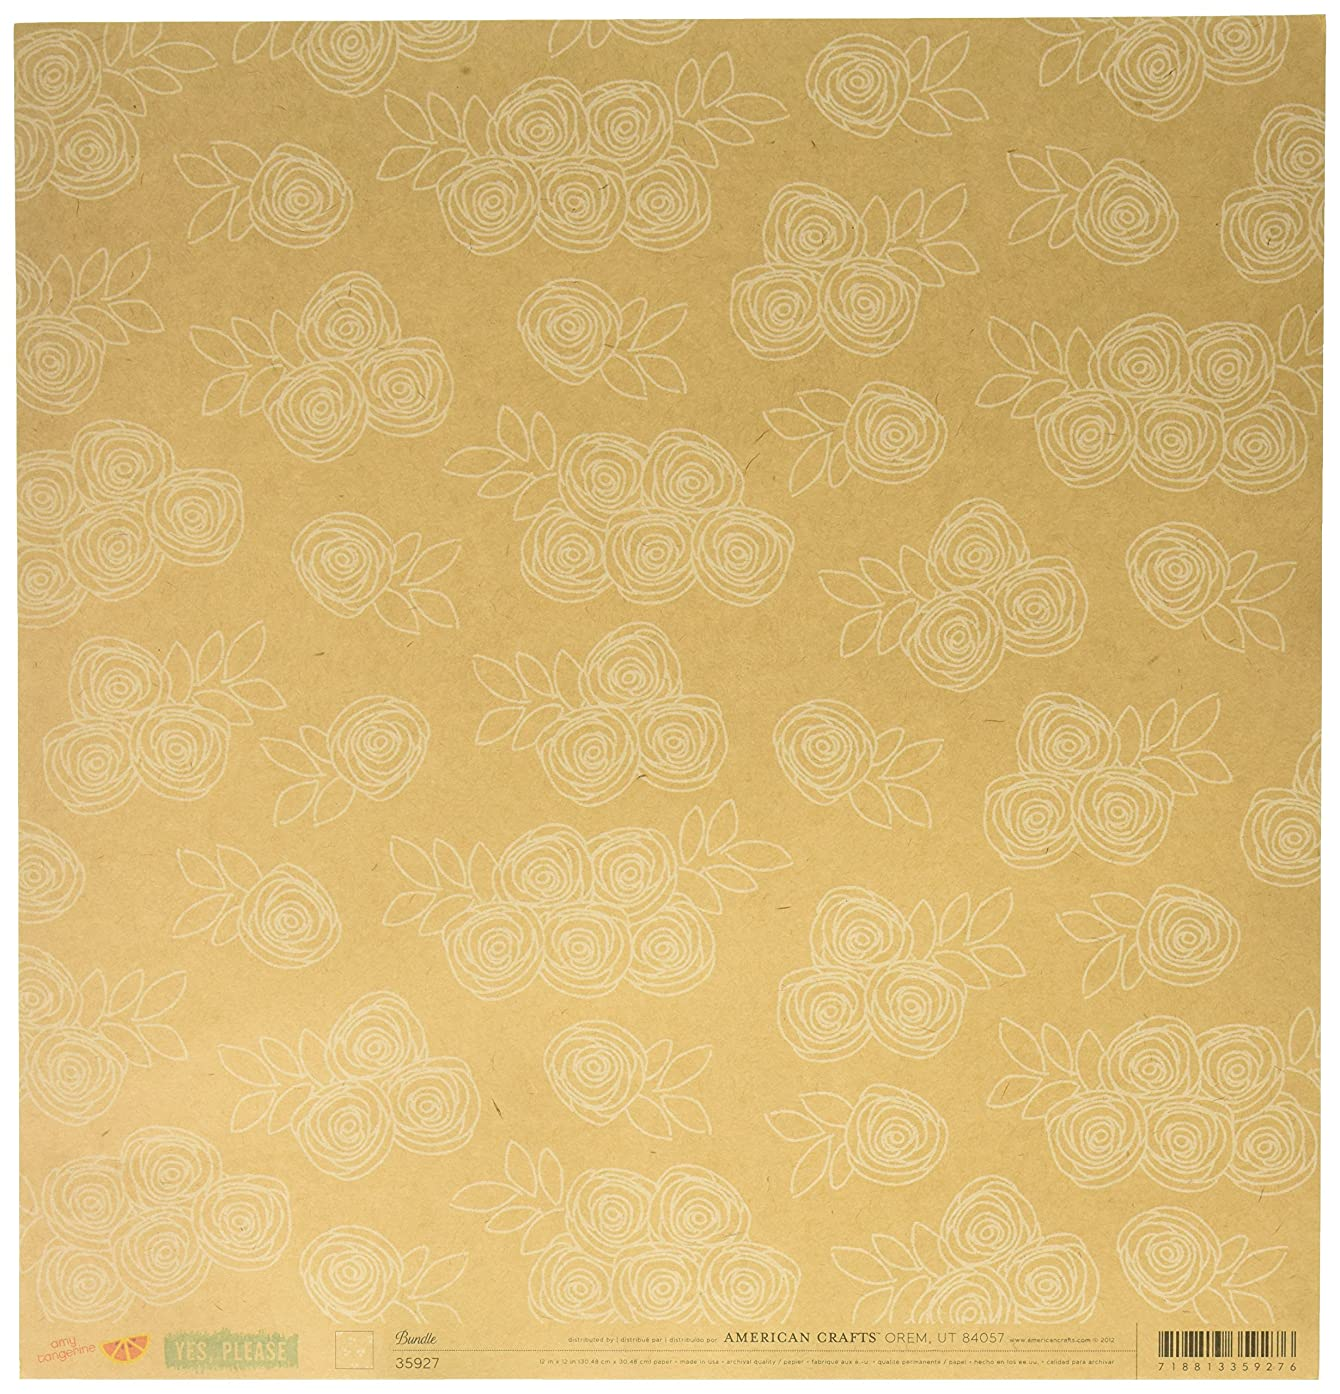 American Crafts Amy Tangerine Yes Please Double-Sided Cardstock 12